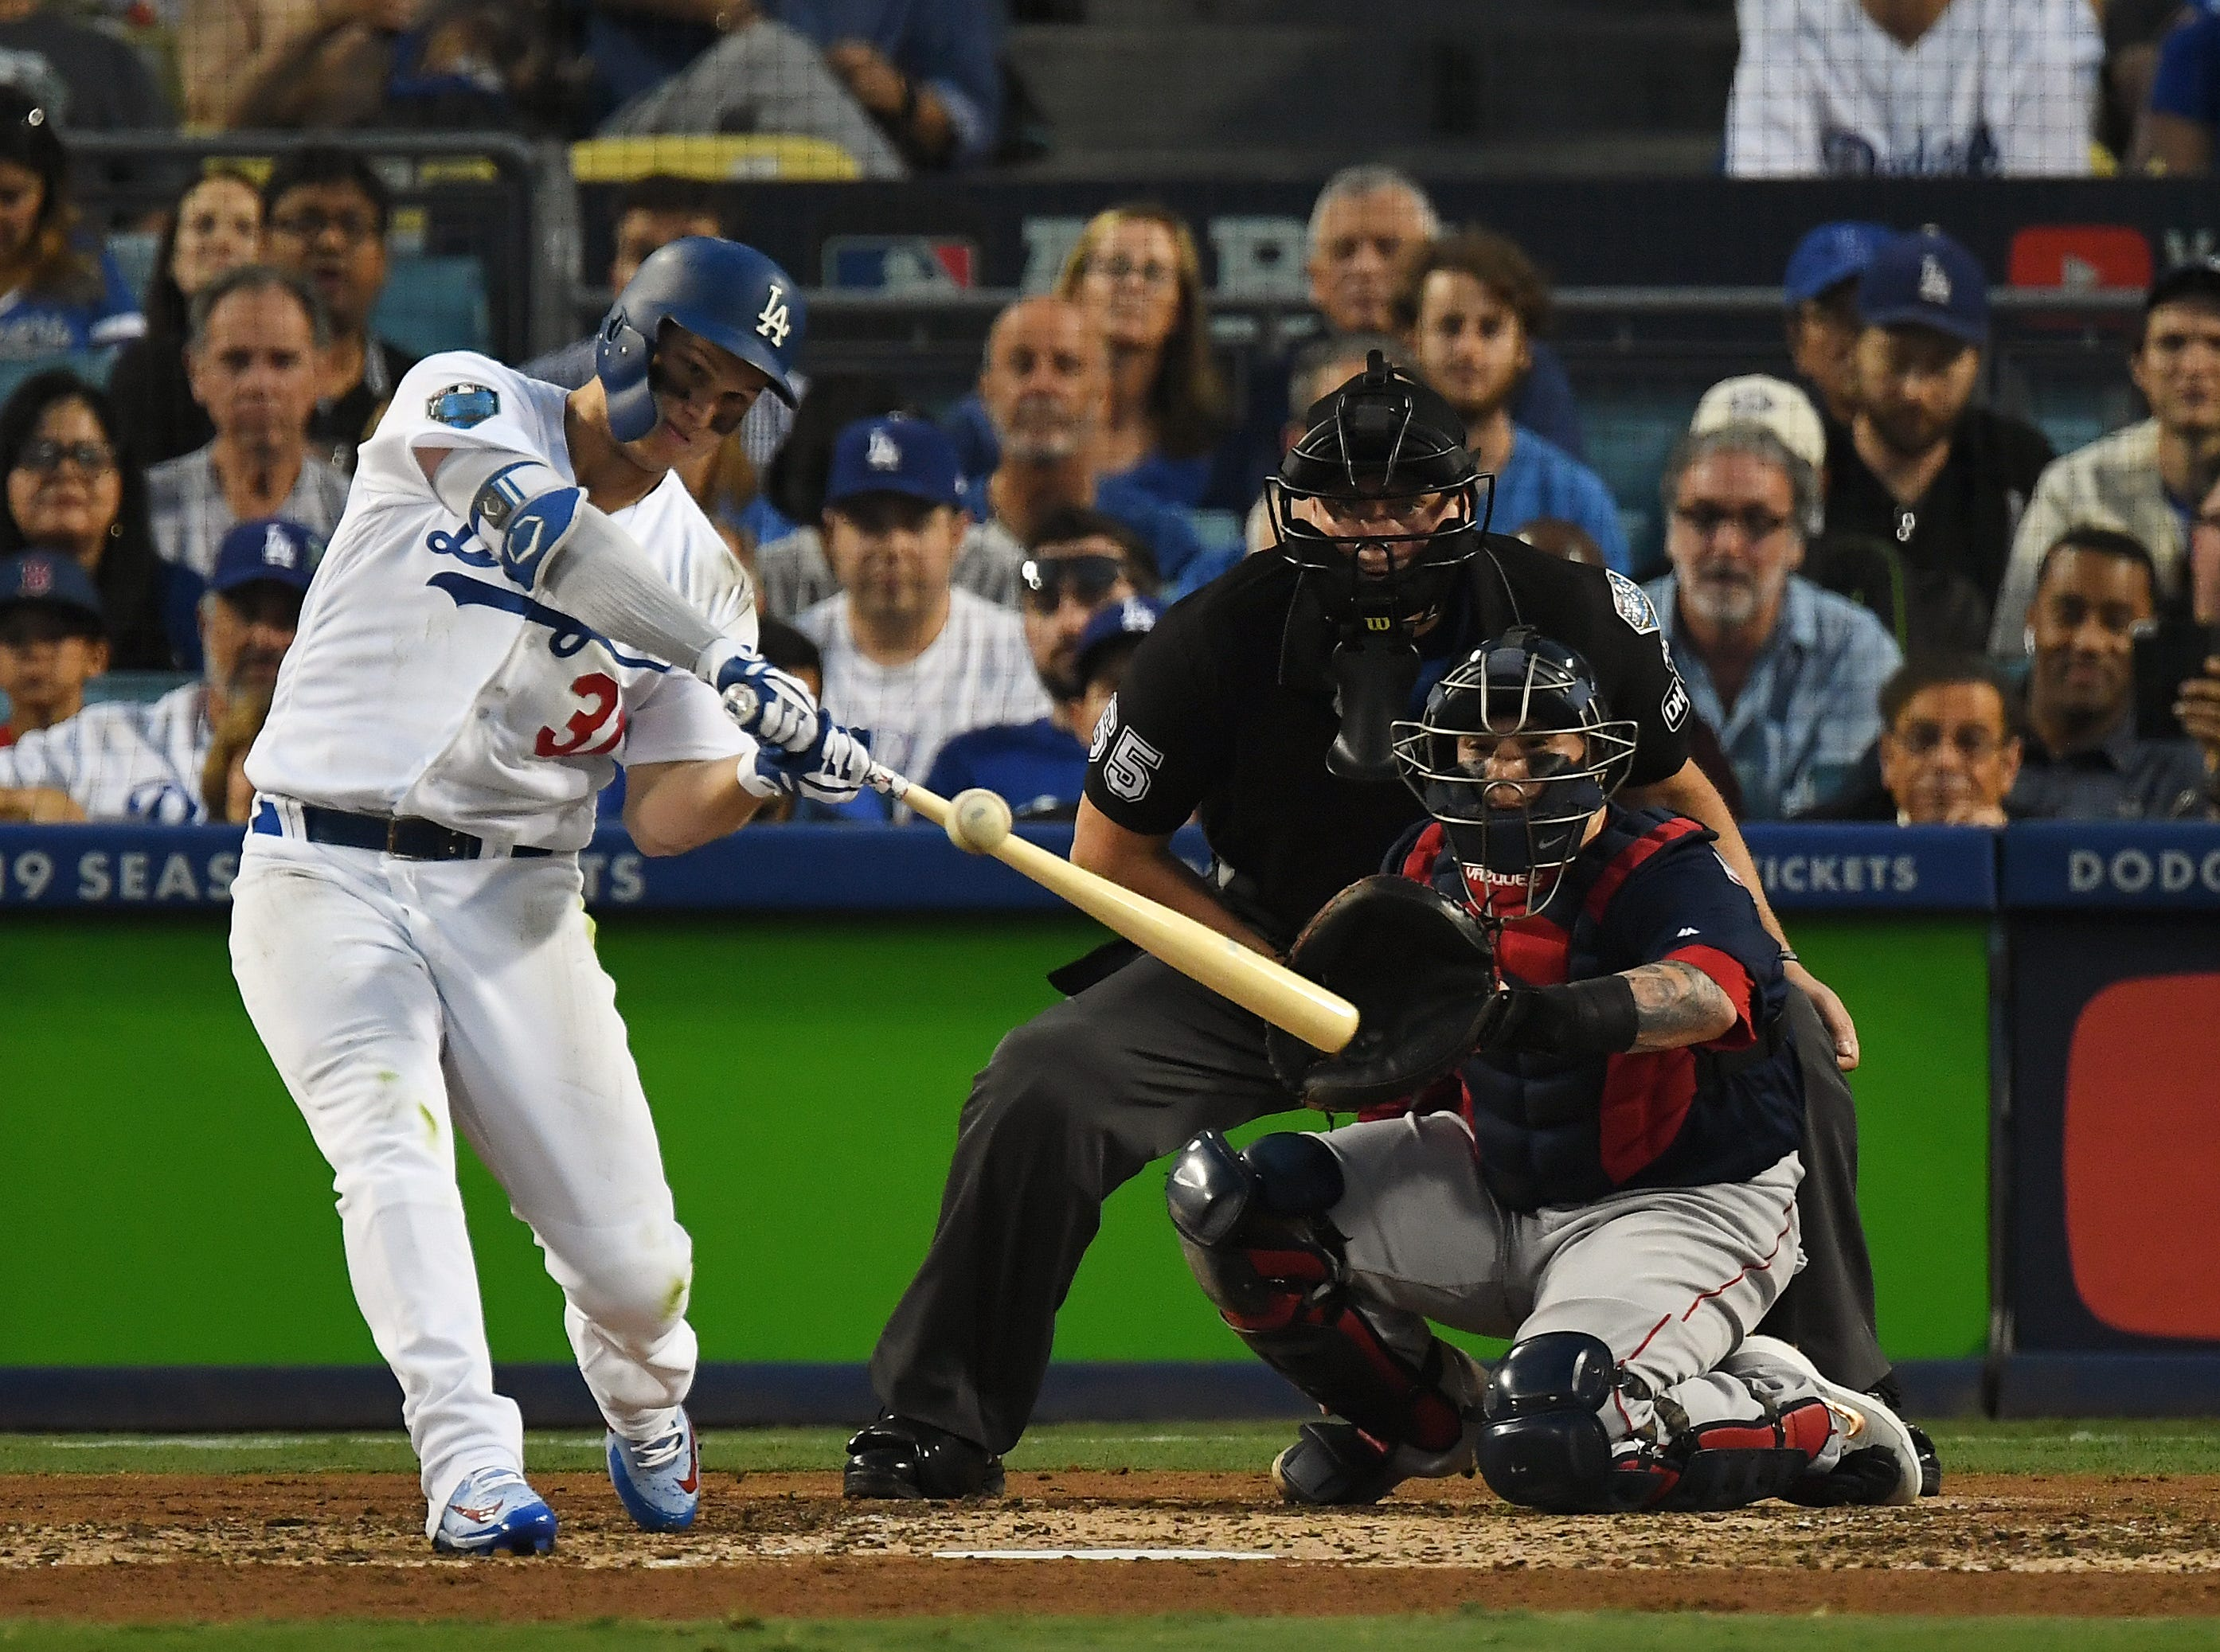 Game 3 at Dodger Stadium: Joc Pederson hits a solo homer in the third inning.